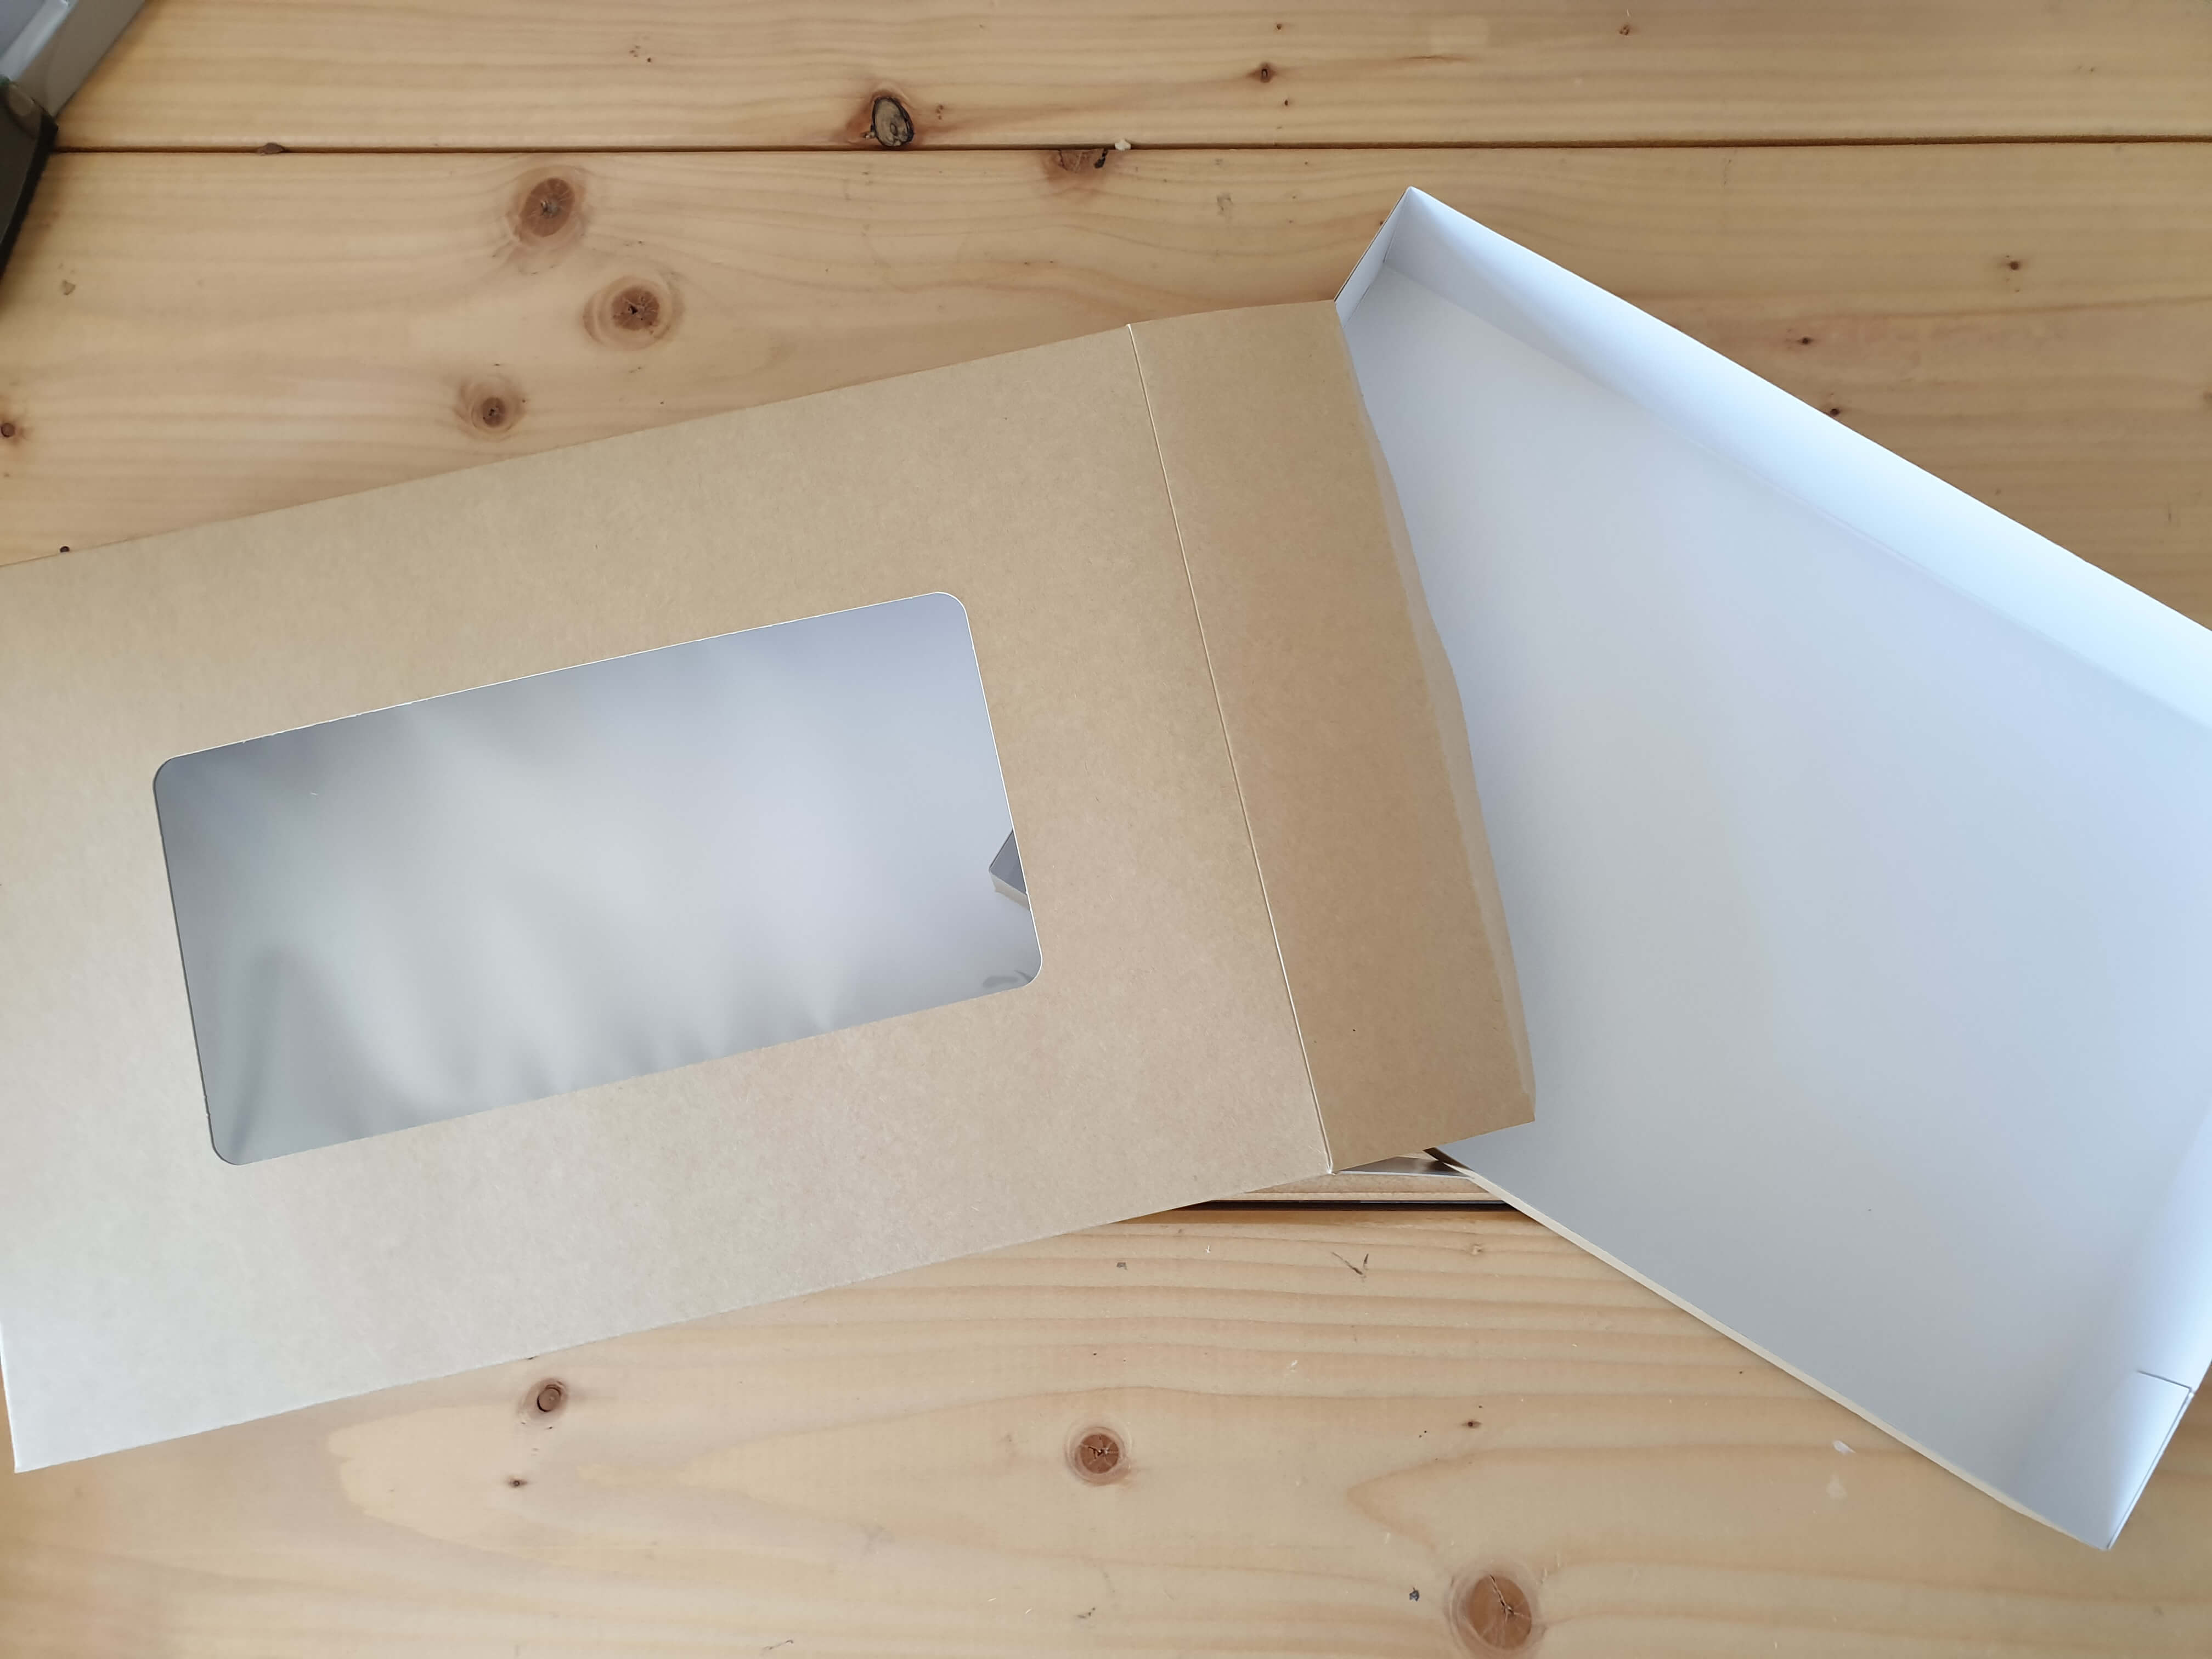 Kraft Windowed Large Platter Box with Full Tray, Half Tray also available